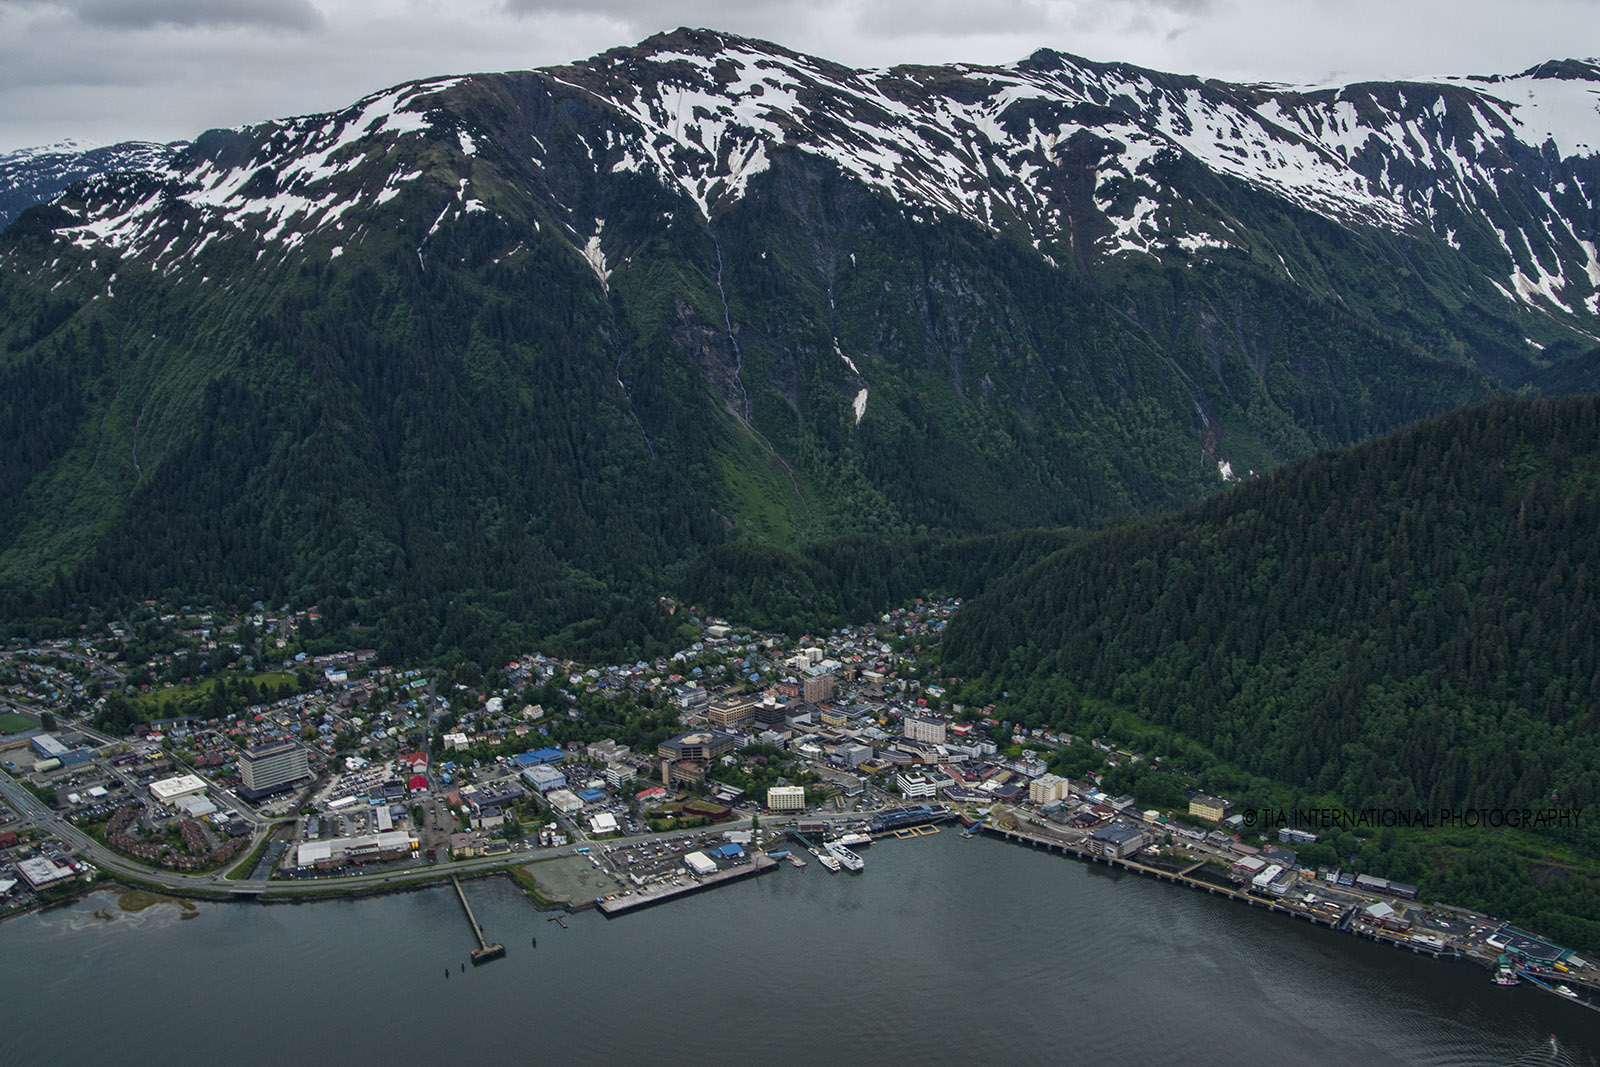 Aerial view of Juneau, Alaska.